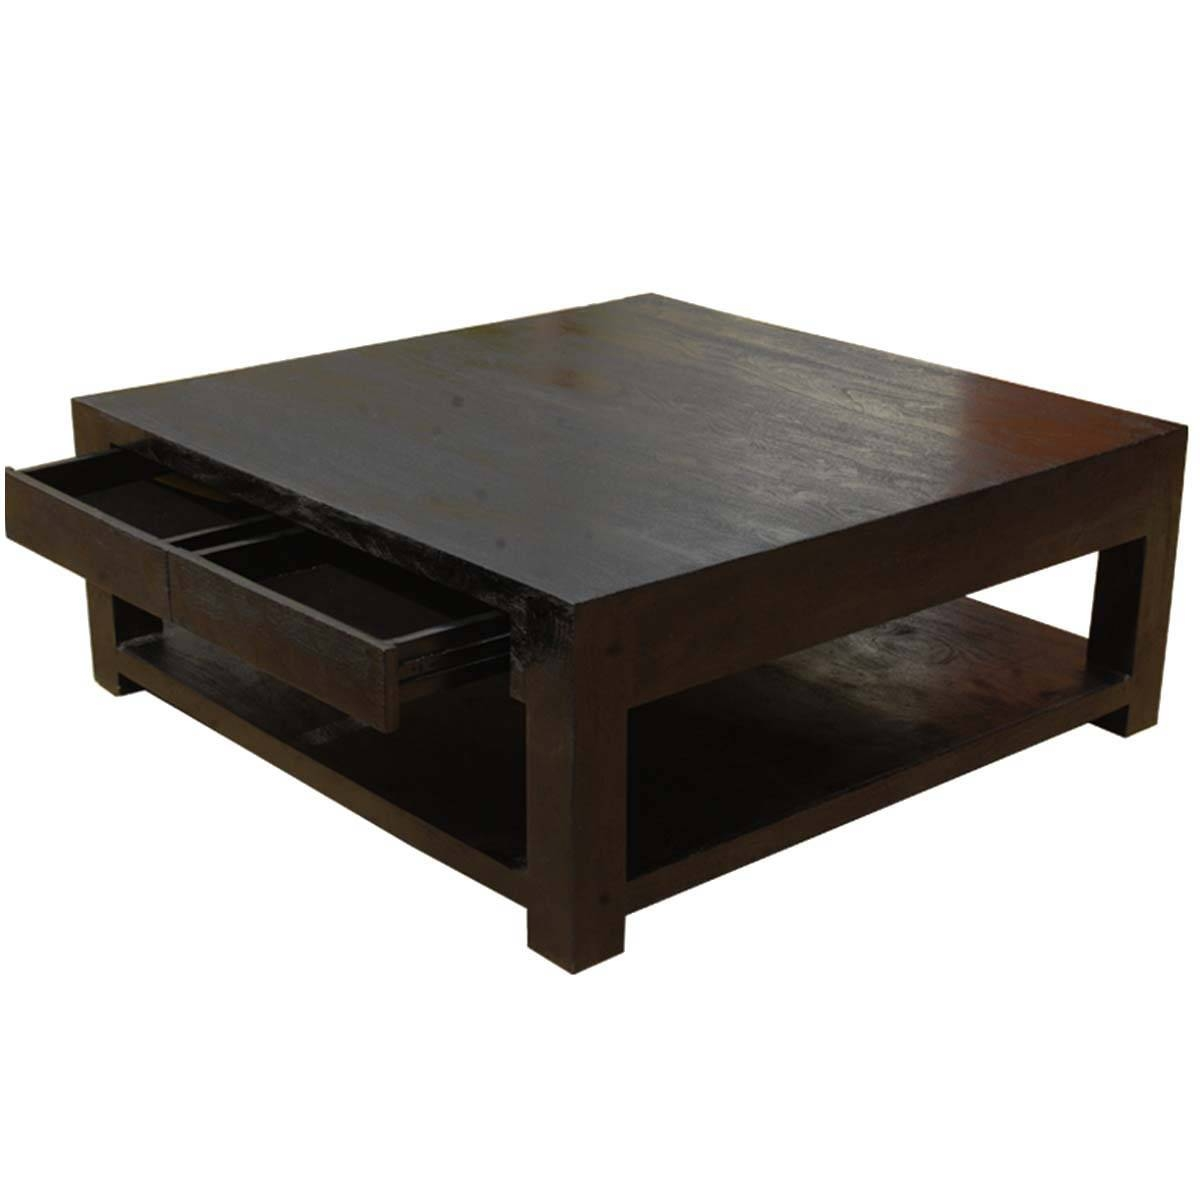 Rustic Coffee Tables throughout Dark Wood Square Coffee Tables (Image 27 of 30)